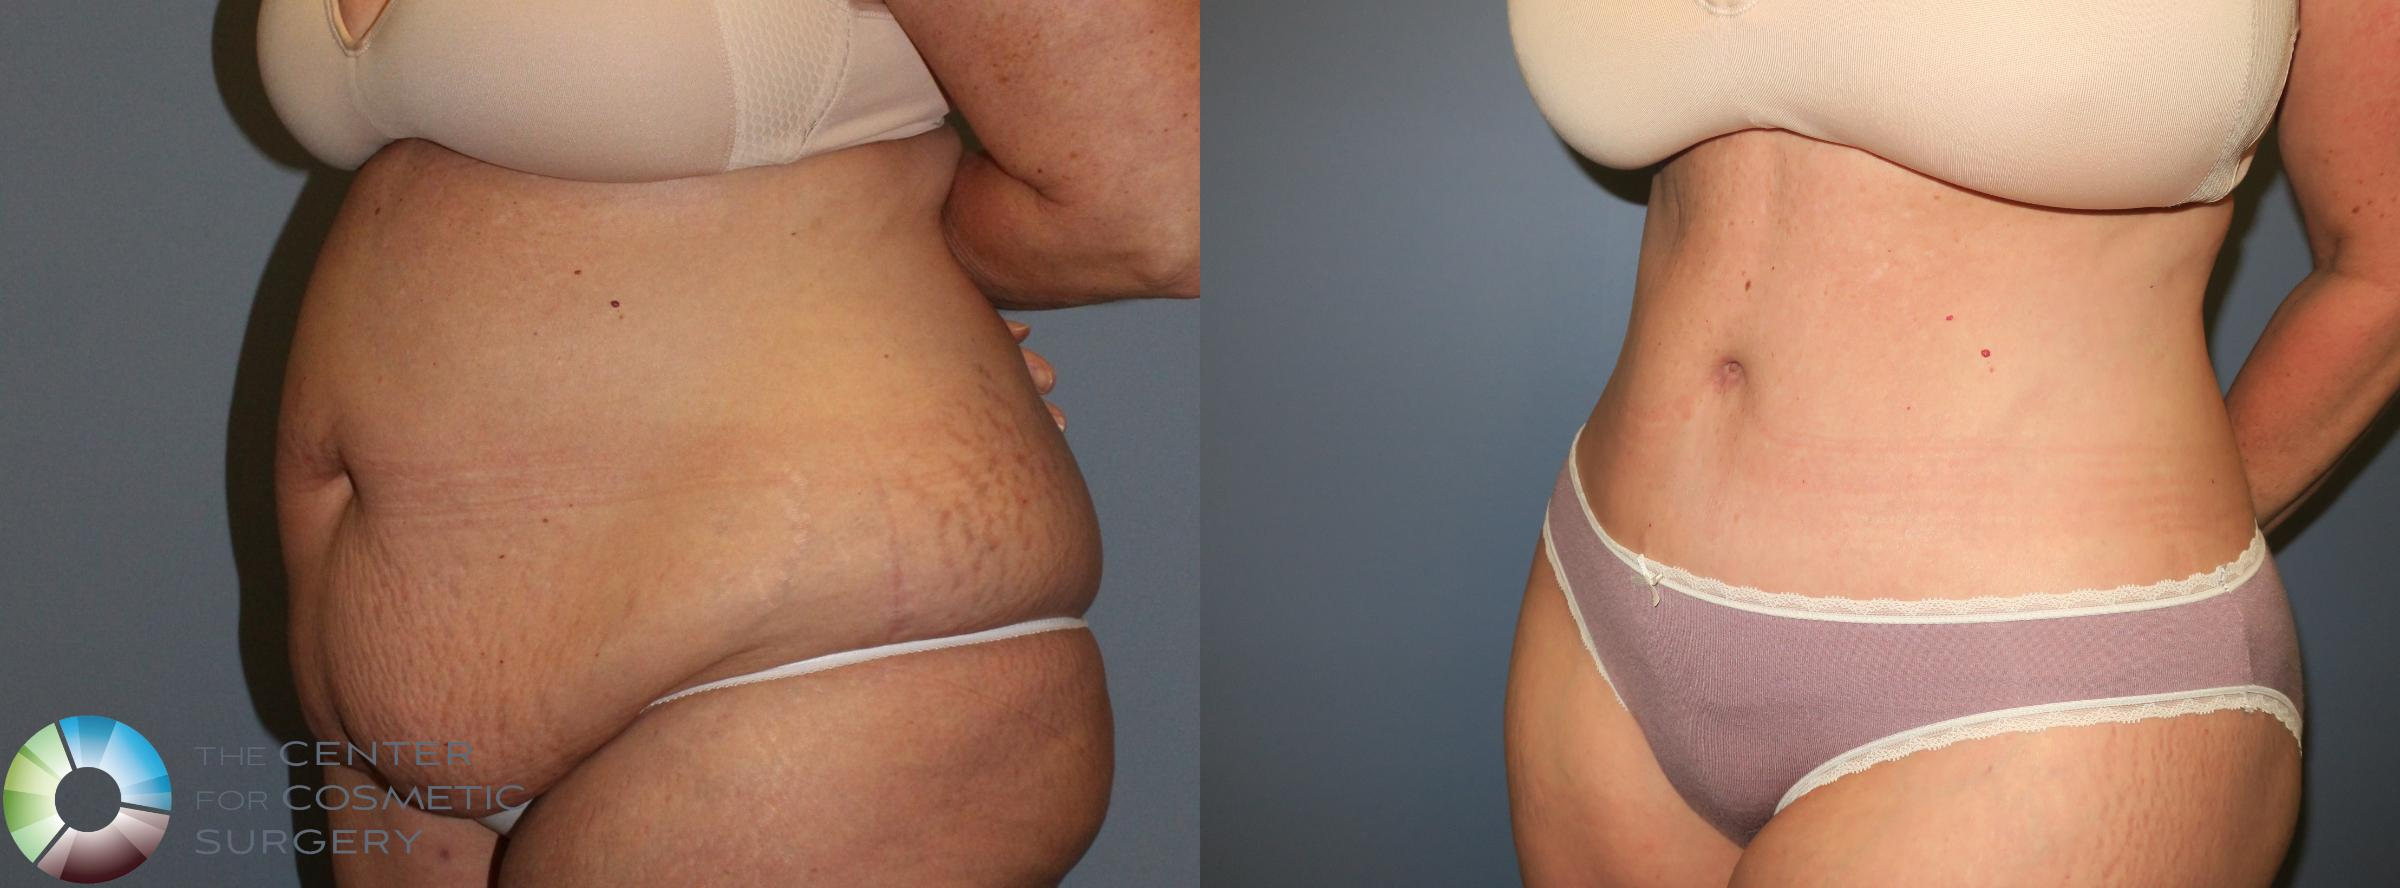 Body Lift Case 765 Before & After View #4 | Golden, CO | The Center for Cosmetic Surgery